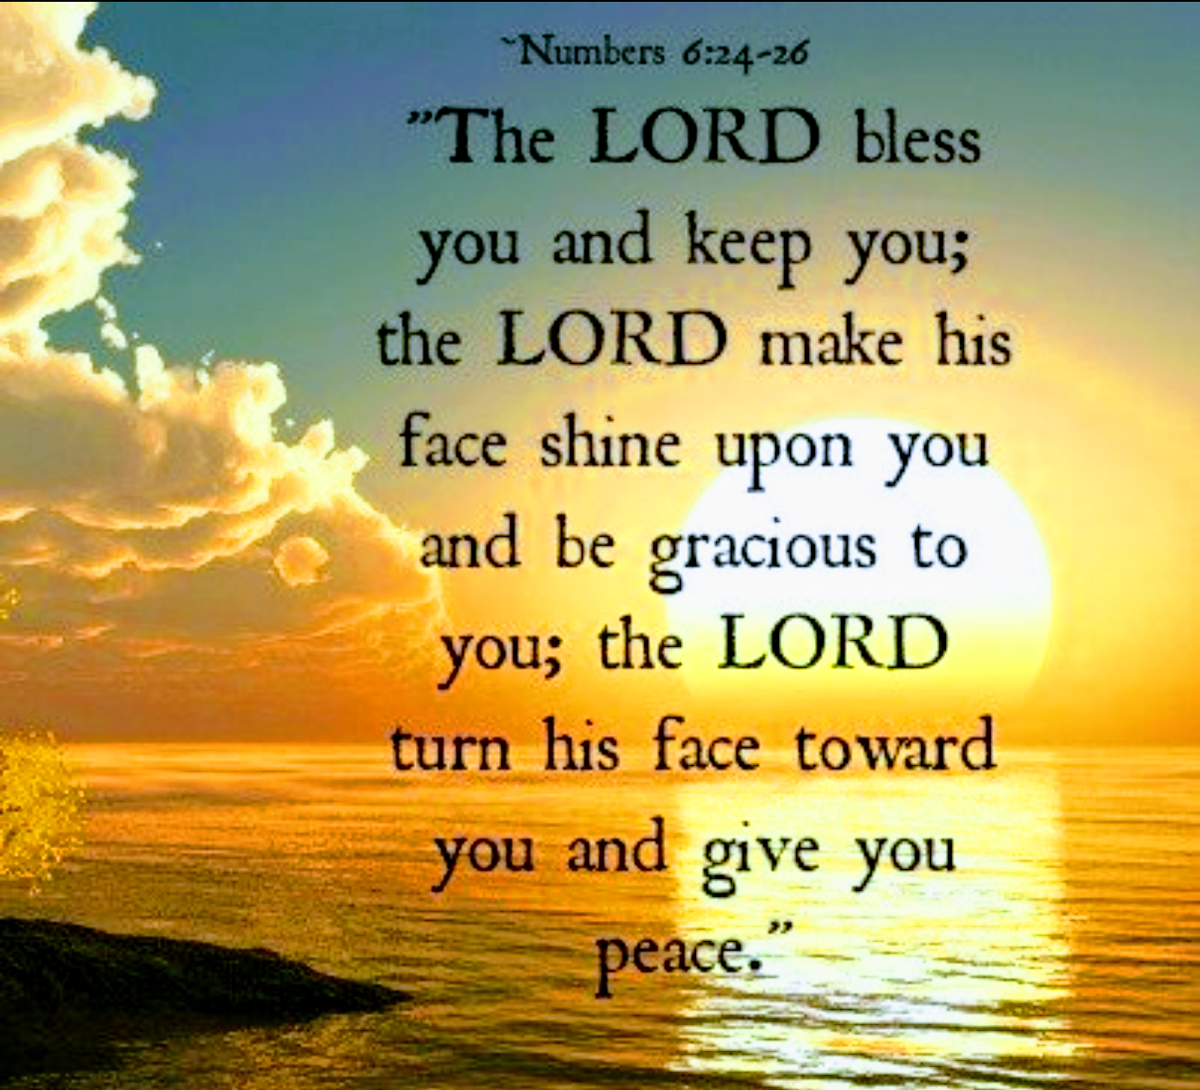 The Lord Bless Thee And Keep Thee The Lord Make His Face Shine Upon Thee And Be Gracious Unto By Keith Mcgivern Medium